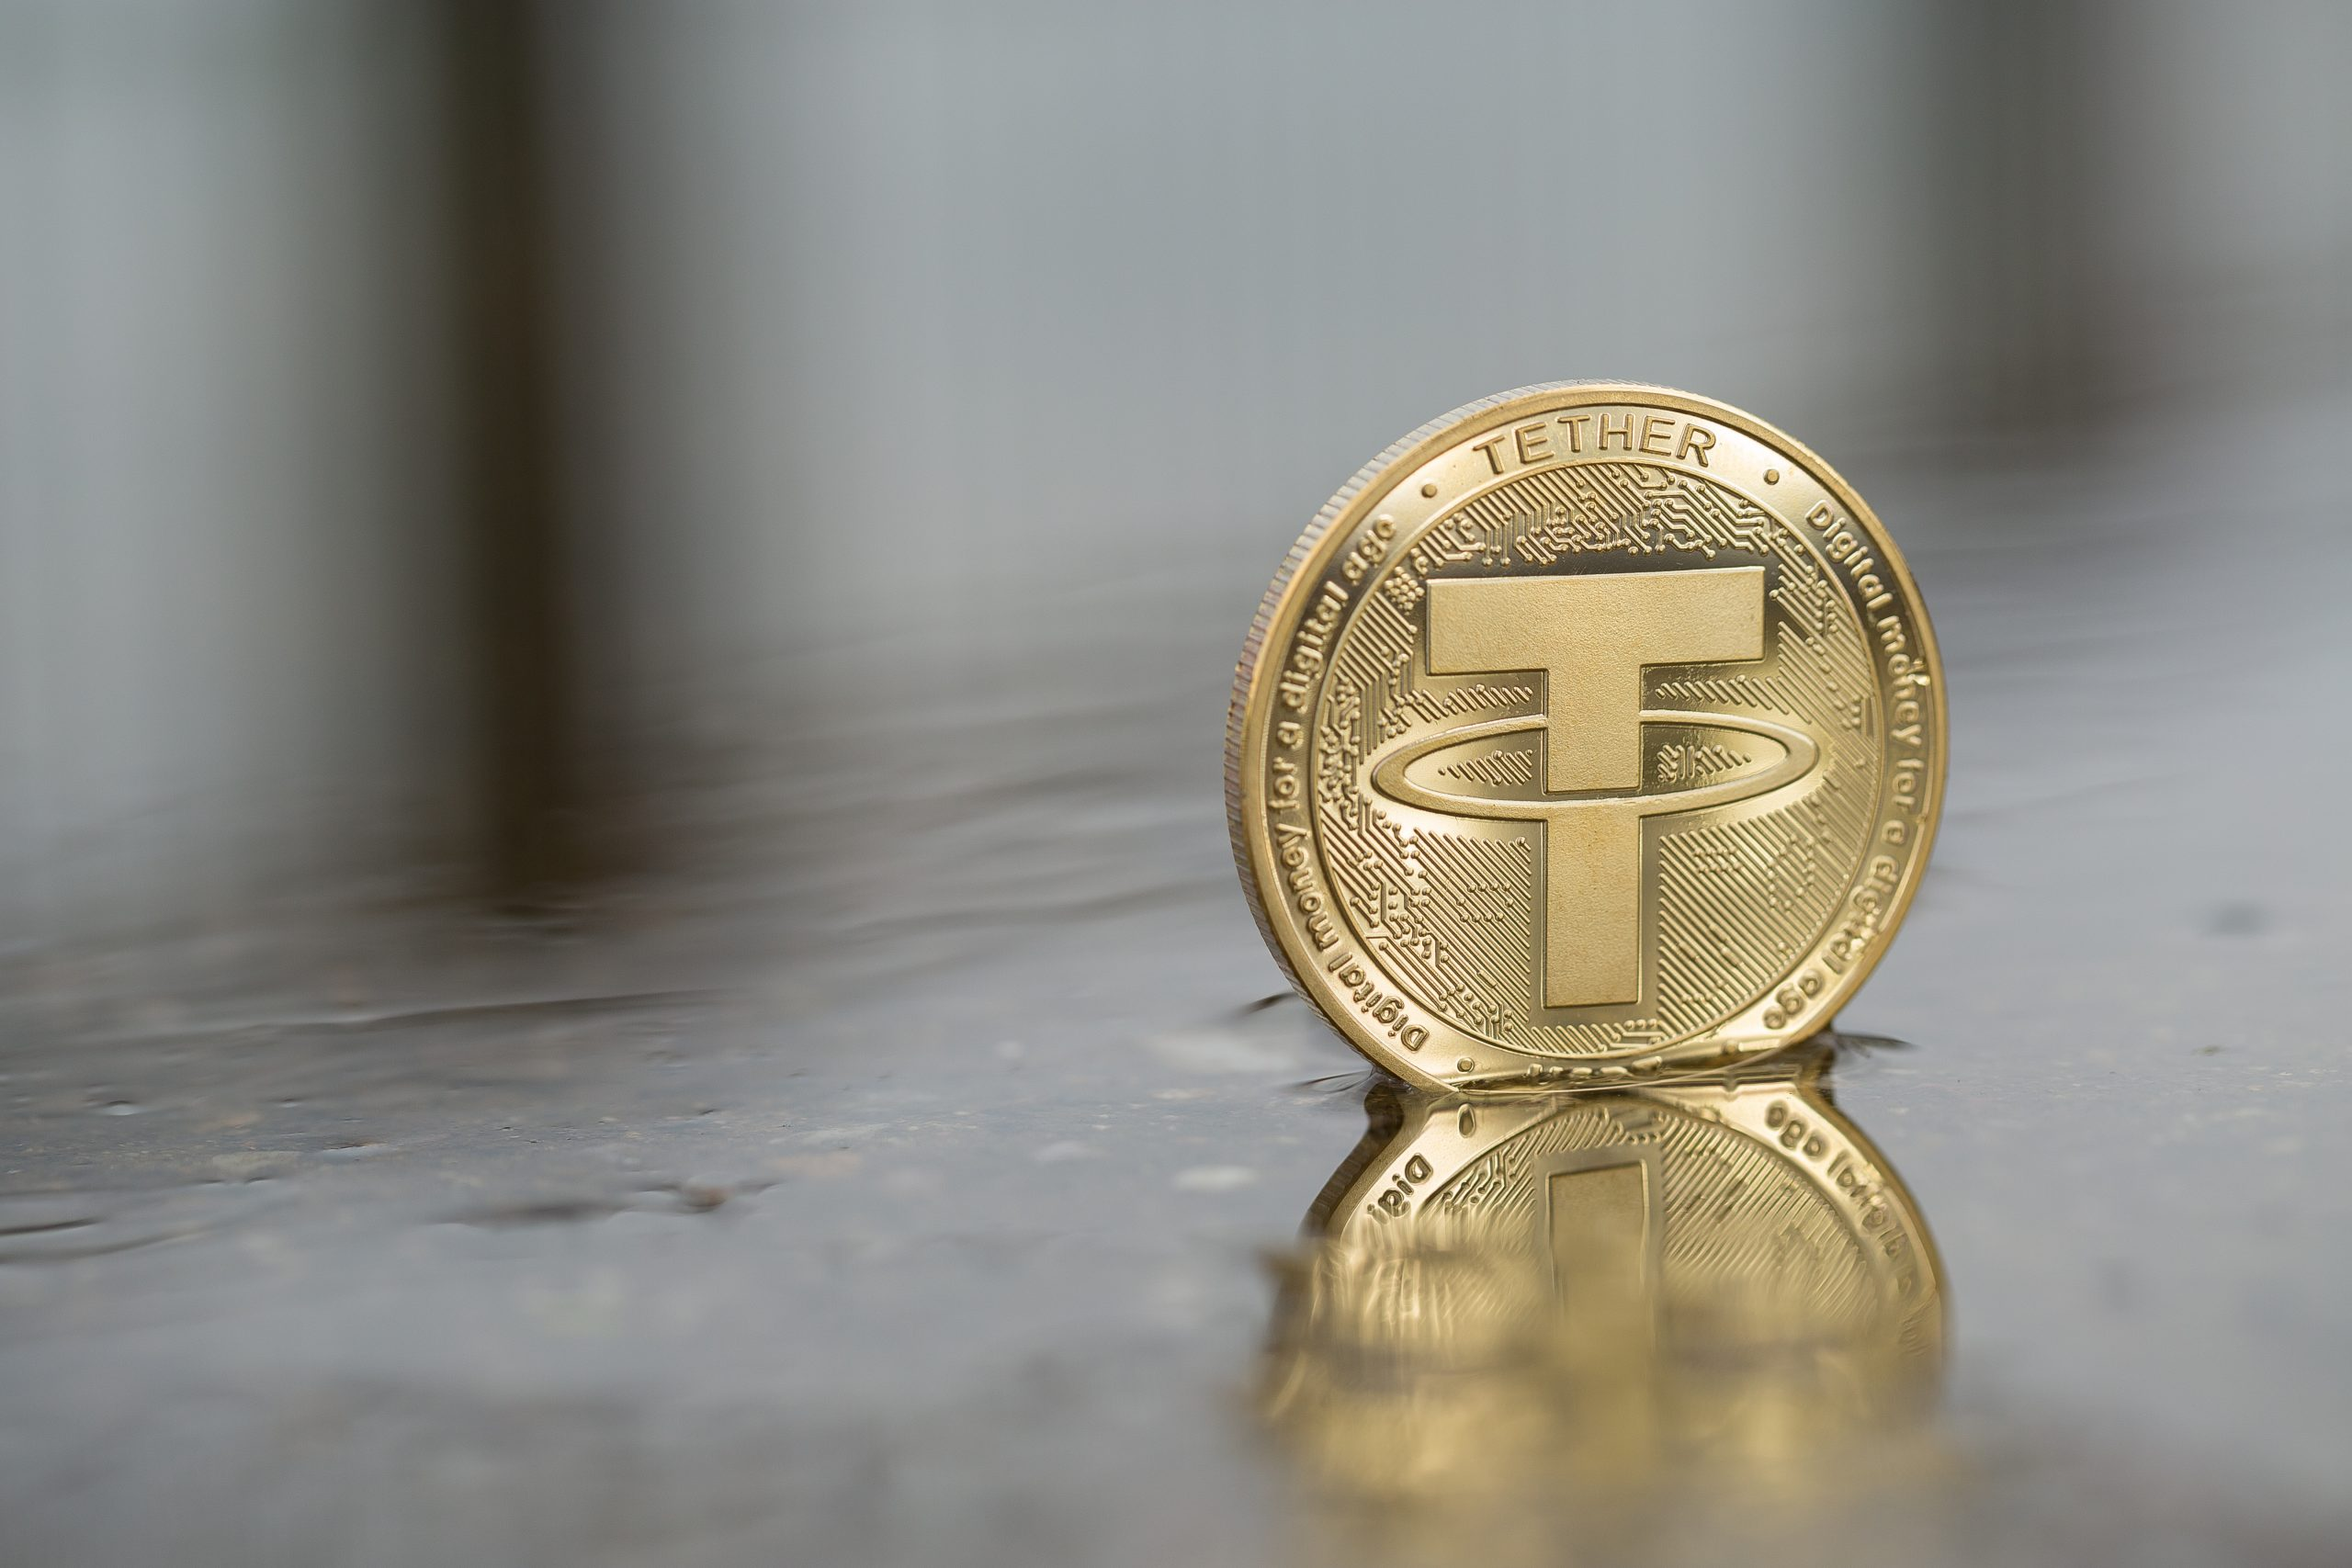 Is Tether Excellent a Scam to Enrich Bitcoin Merchants?